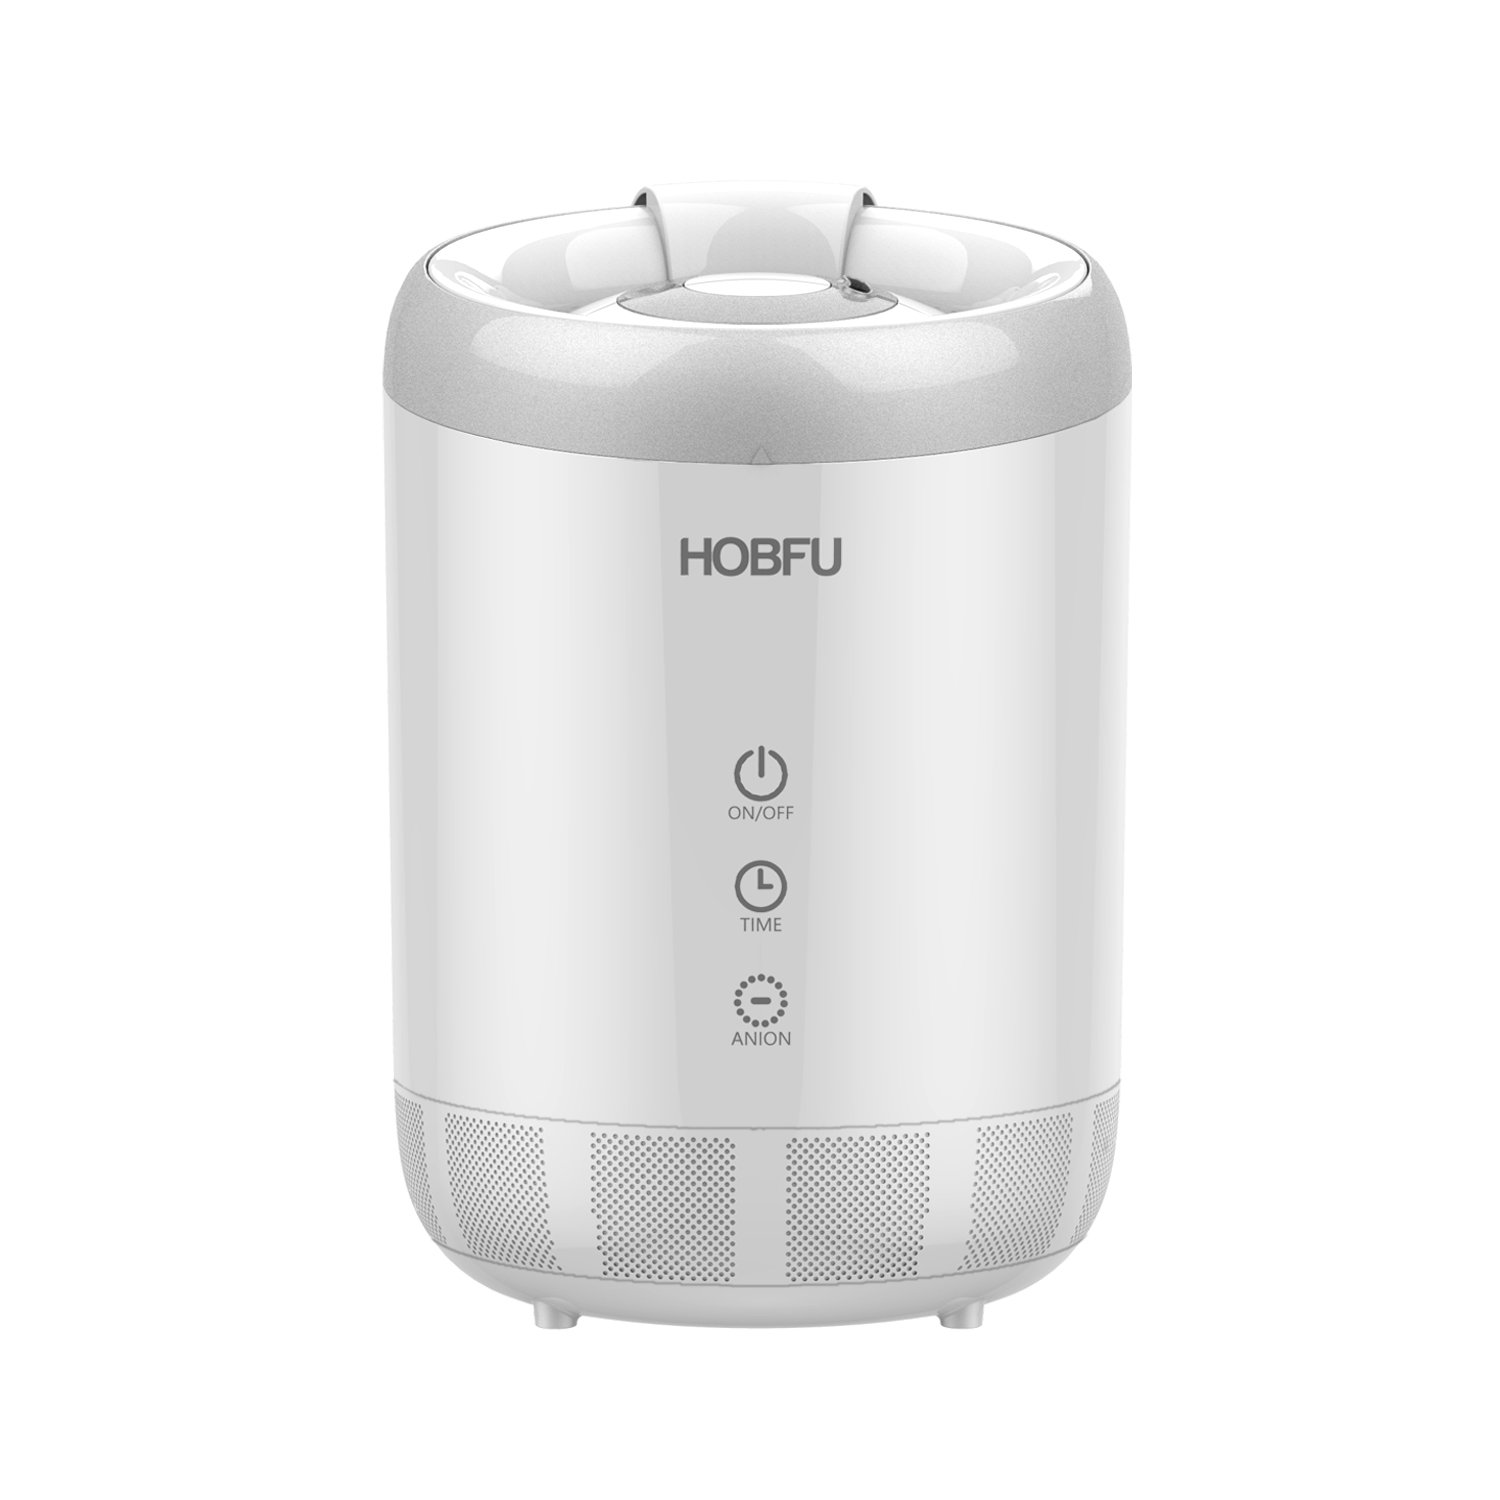 HOBFU Ultrasonic Cool Mist Humidifier by, 4L/1.1Gallon Top Fill Humidifier for Bedroom Baby SPA Yoga with Timer, 3 Adjustable Mist settings, Open Water Tank, Sleep Mode